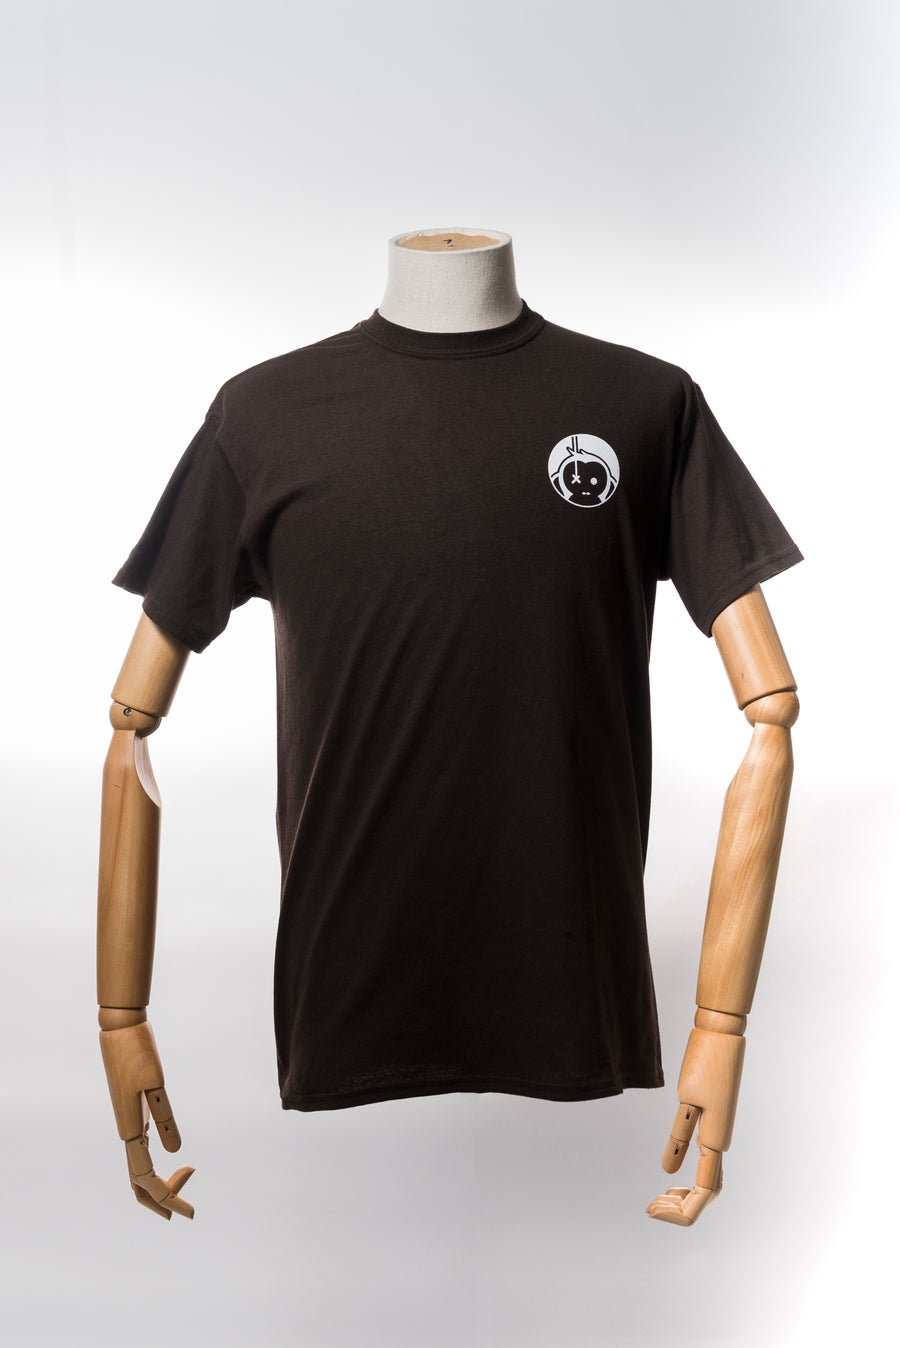 Image of Monkey Climber Pro Public shirt I Chocolate